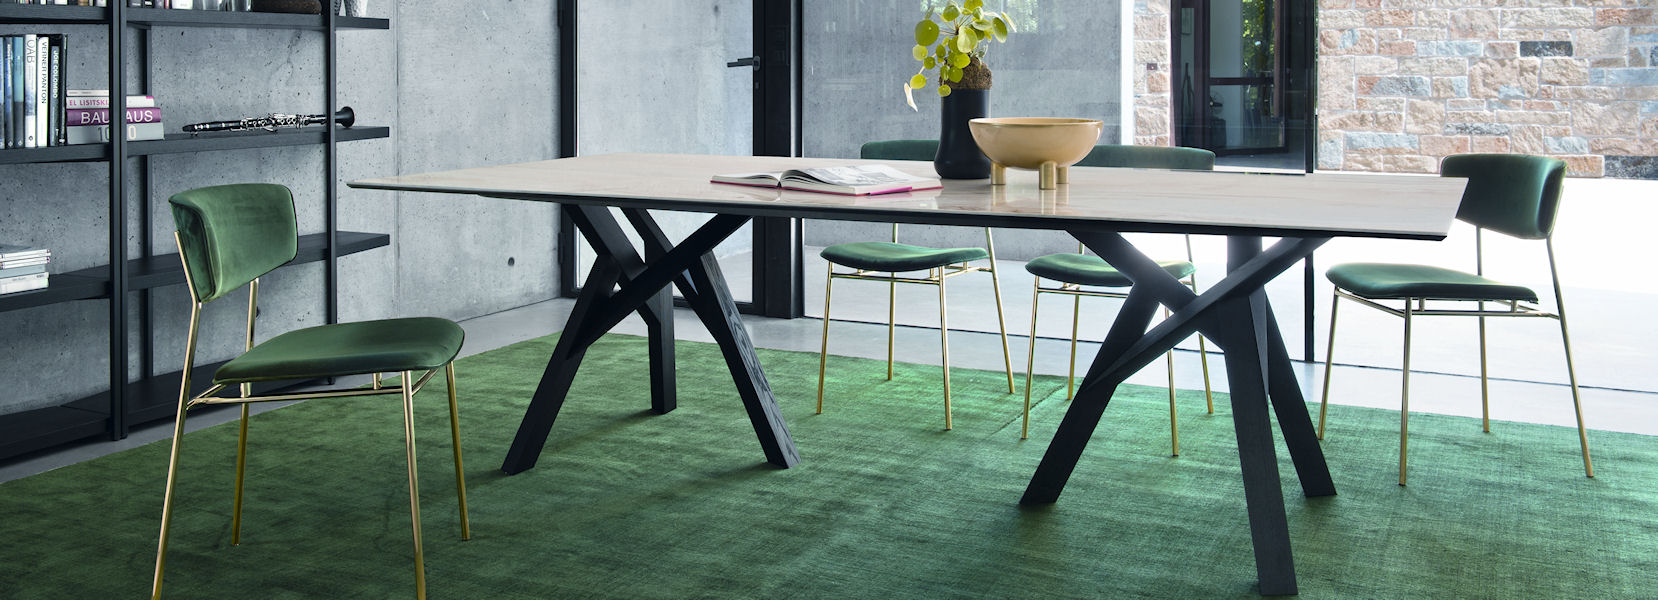 Calligaris: Jungle